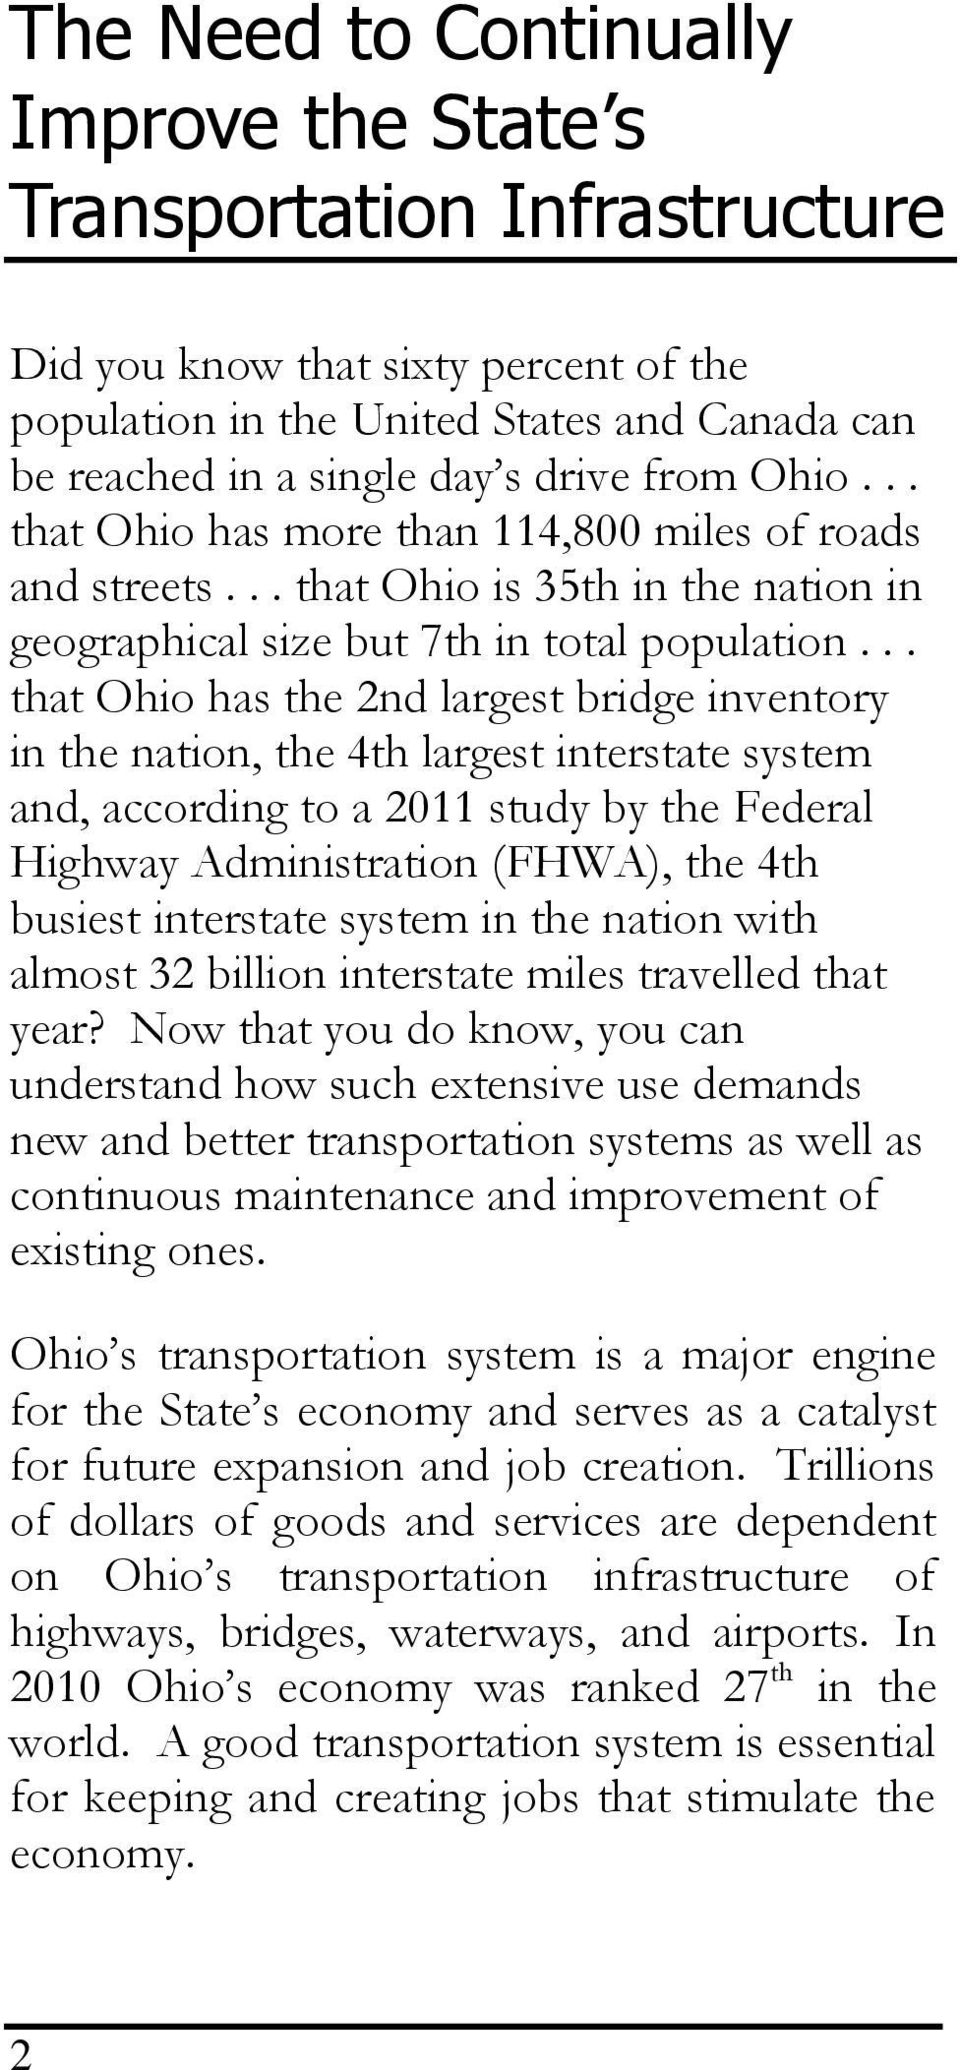 .. that Ohio has the 2nd largest bridge inventory in the nation, the 4th largest interstate system and, according to a 2011 study by the Federal Highway Administration (FHWA), the 4th busiest